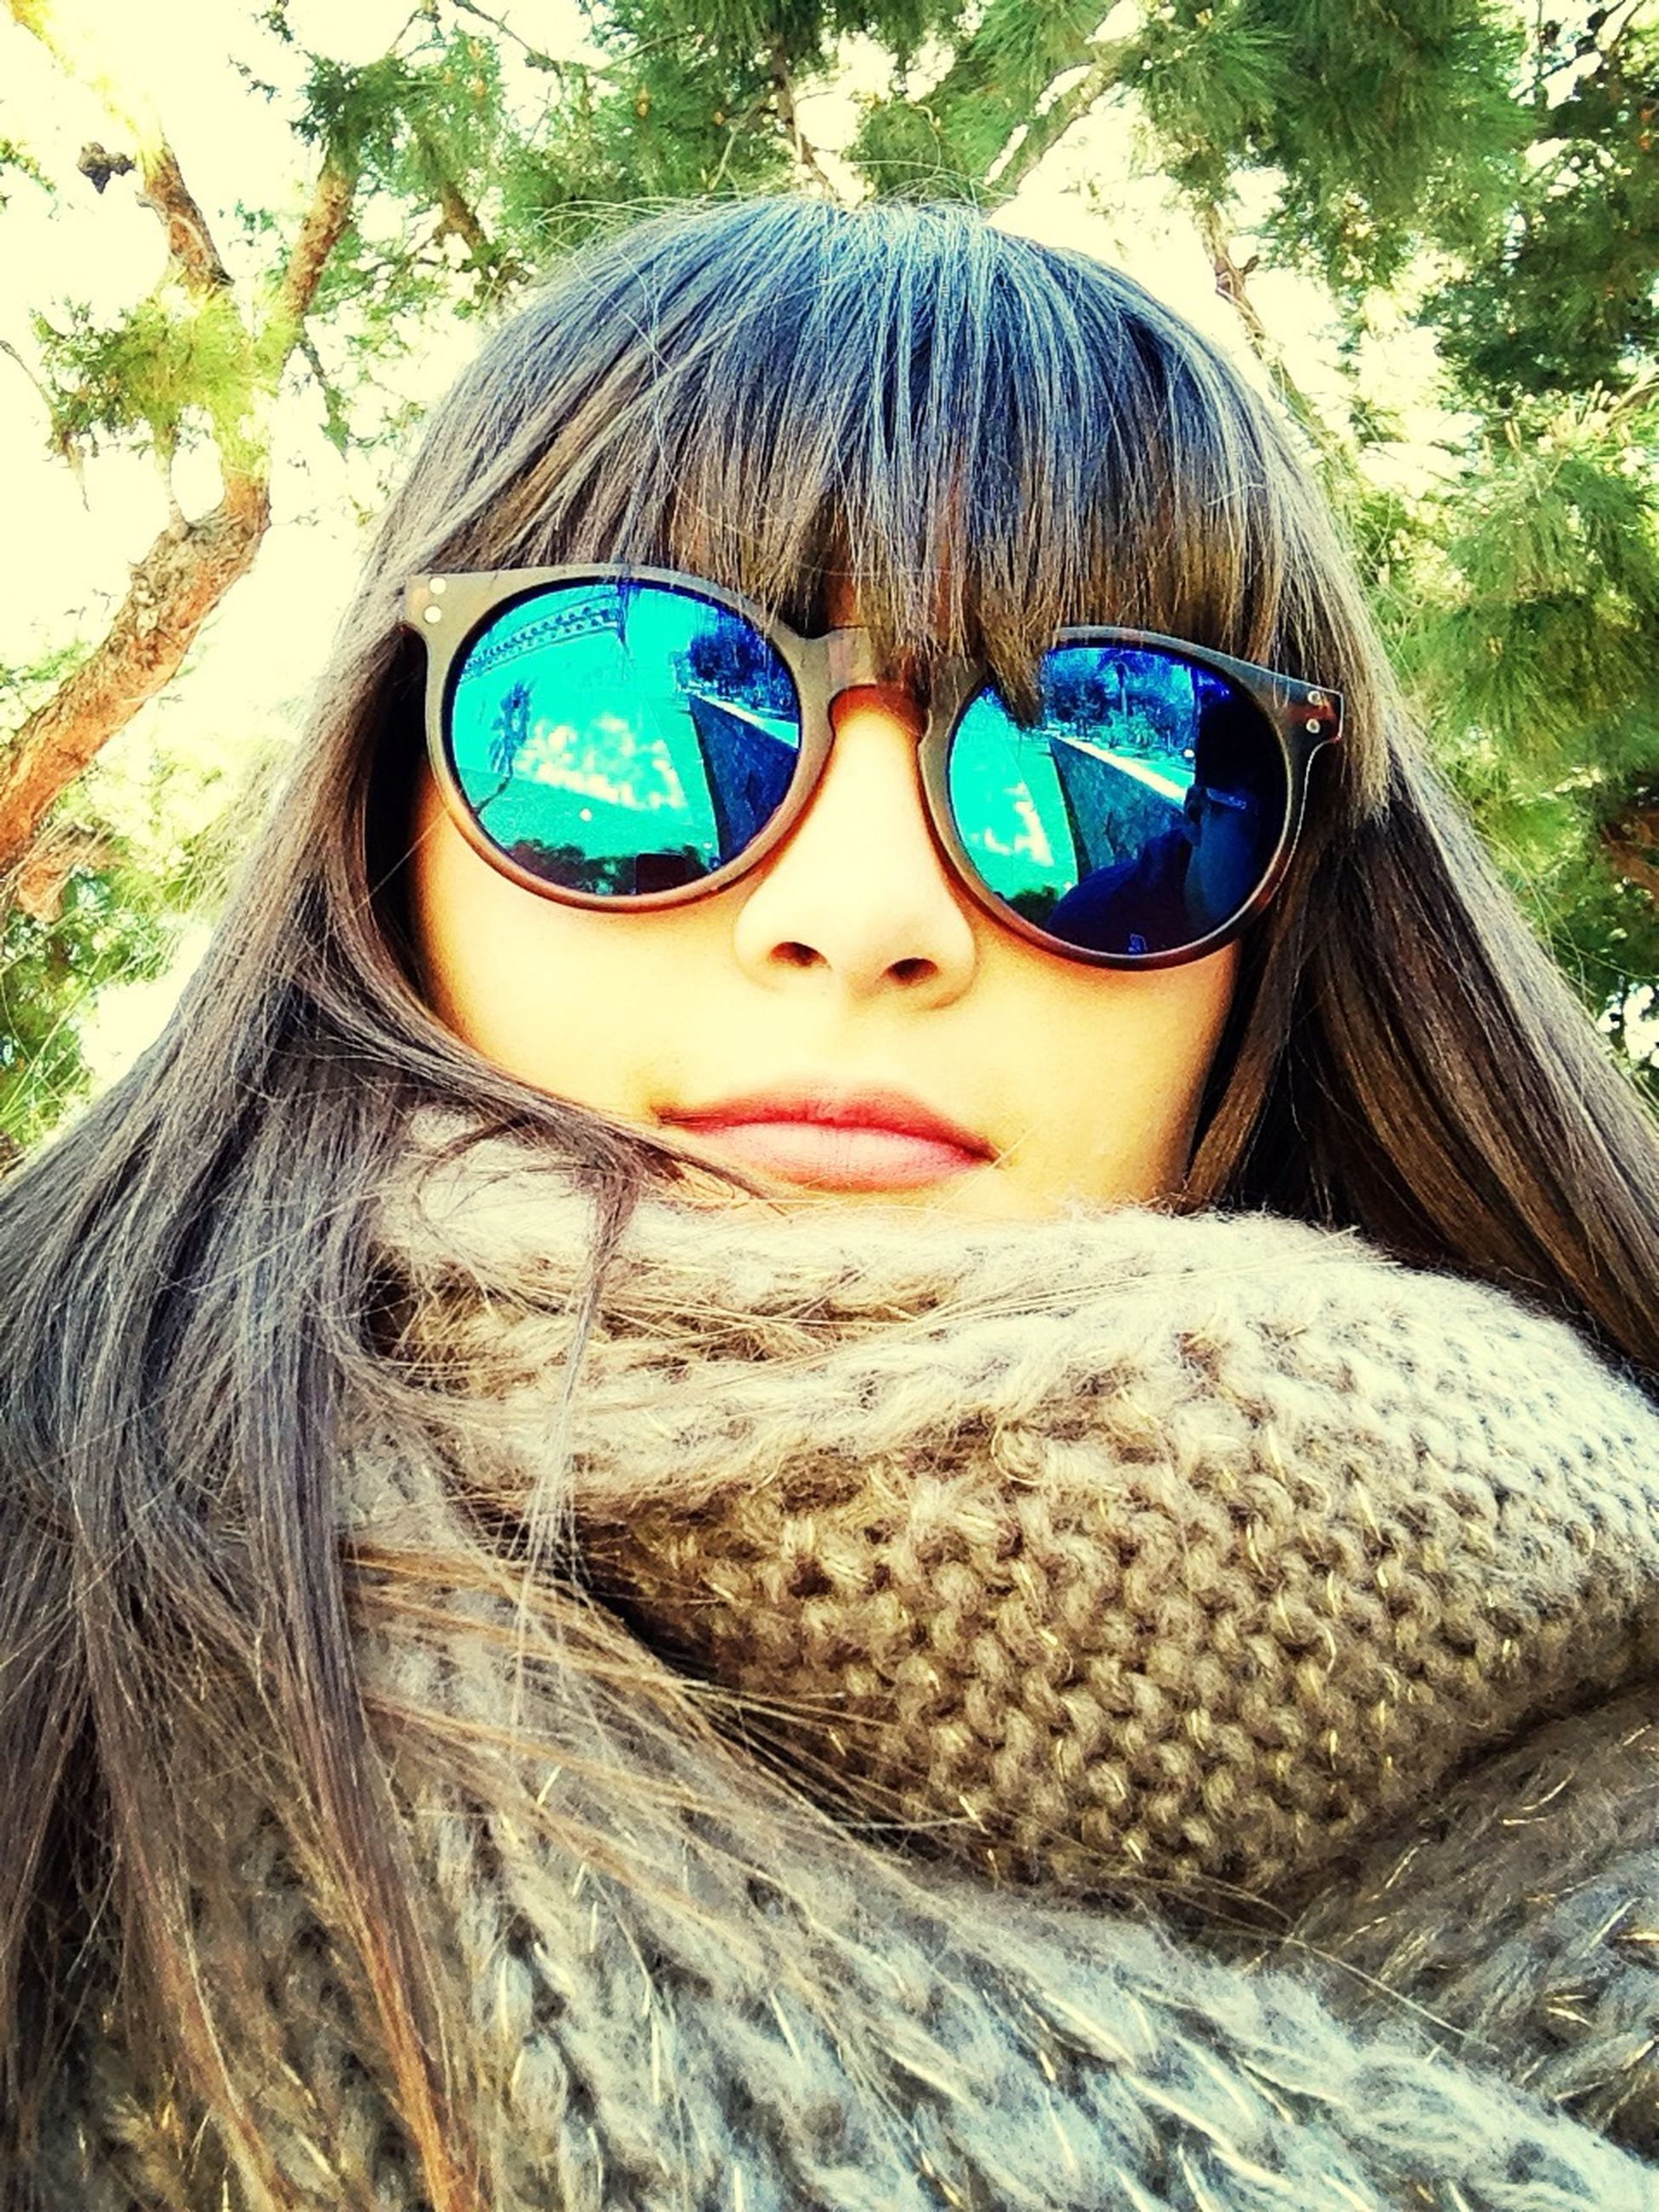 close-up, leisure activity, lifestyles, looking at camera, portrait, headshot, childhood, tree, front view, human face, sunglasses, person, day, circle, long hair, outdoors, focus on foreground, nature